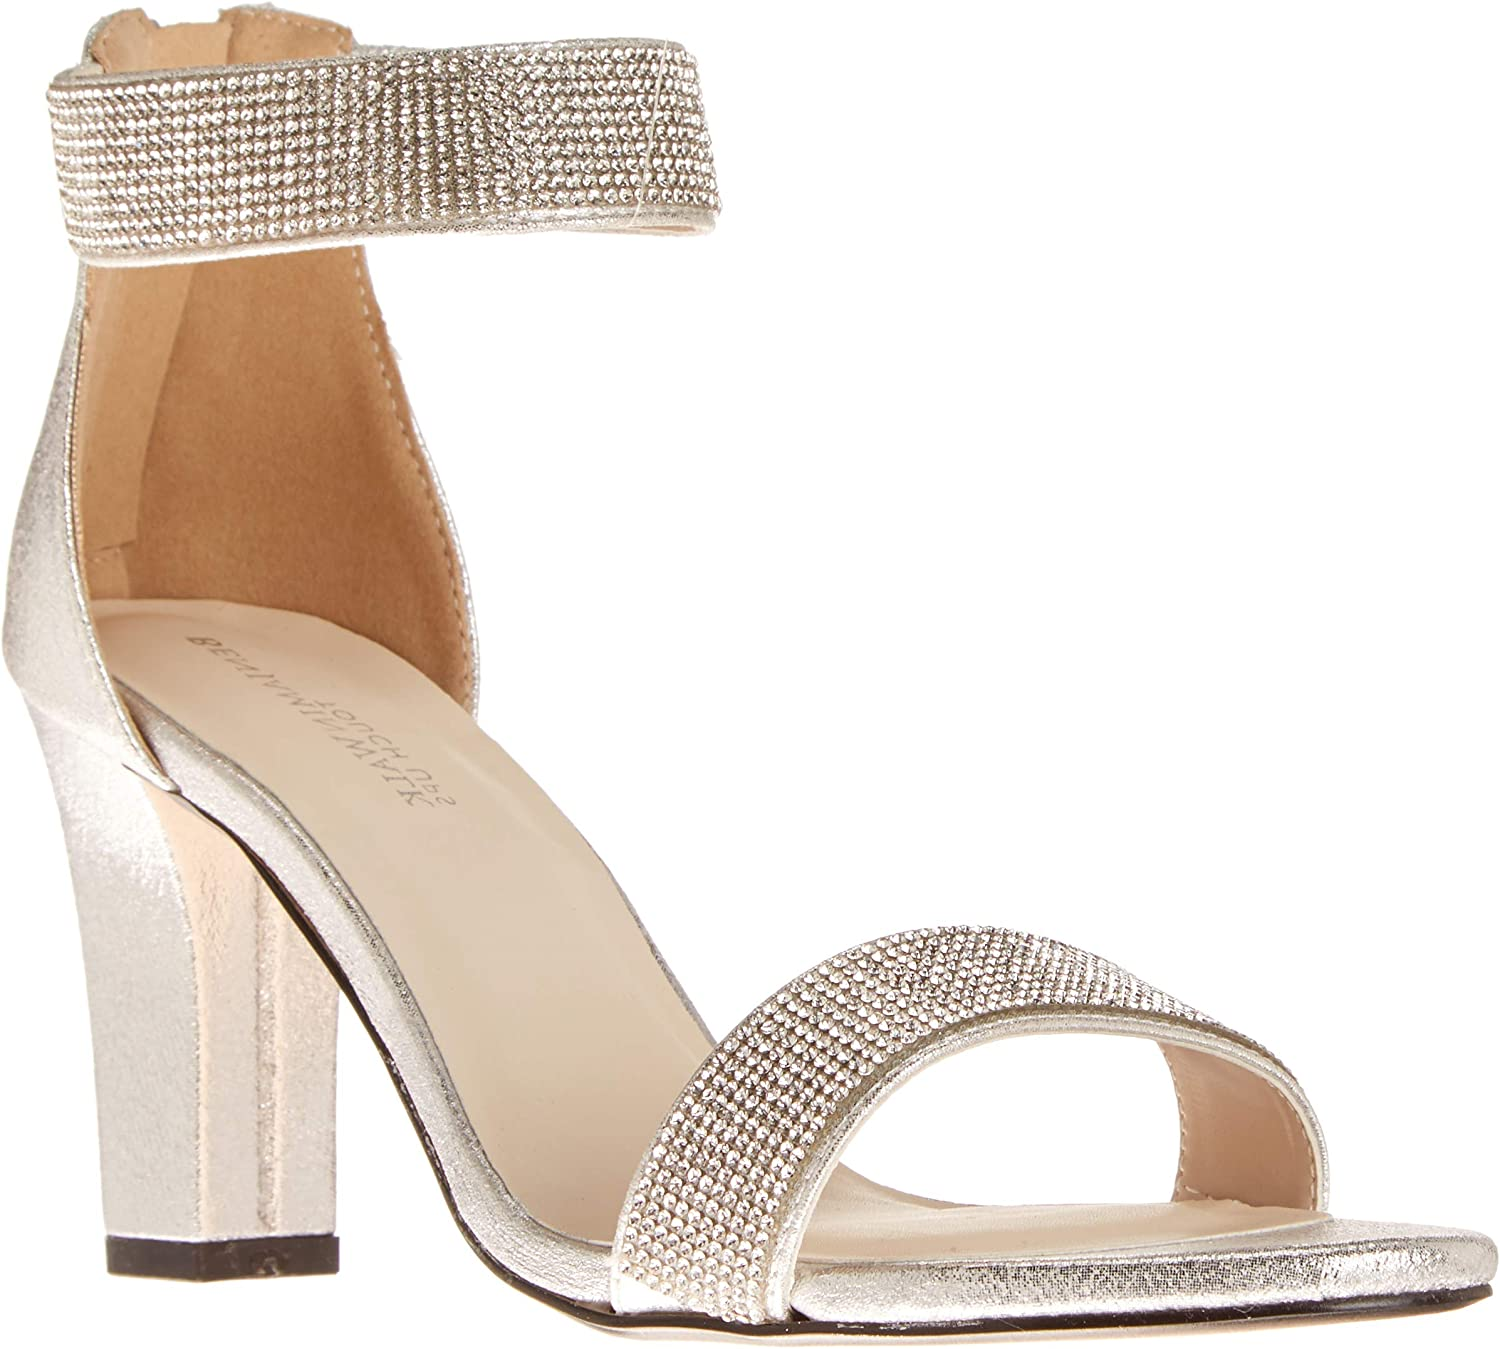 Touch Ups Women's Ankle 5% OFF Strap Heeled store Sandal